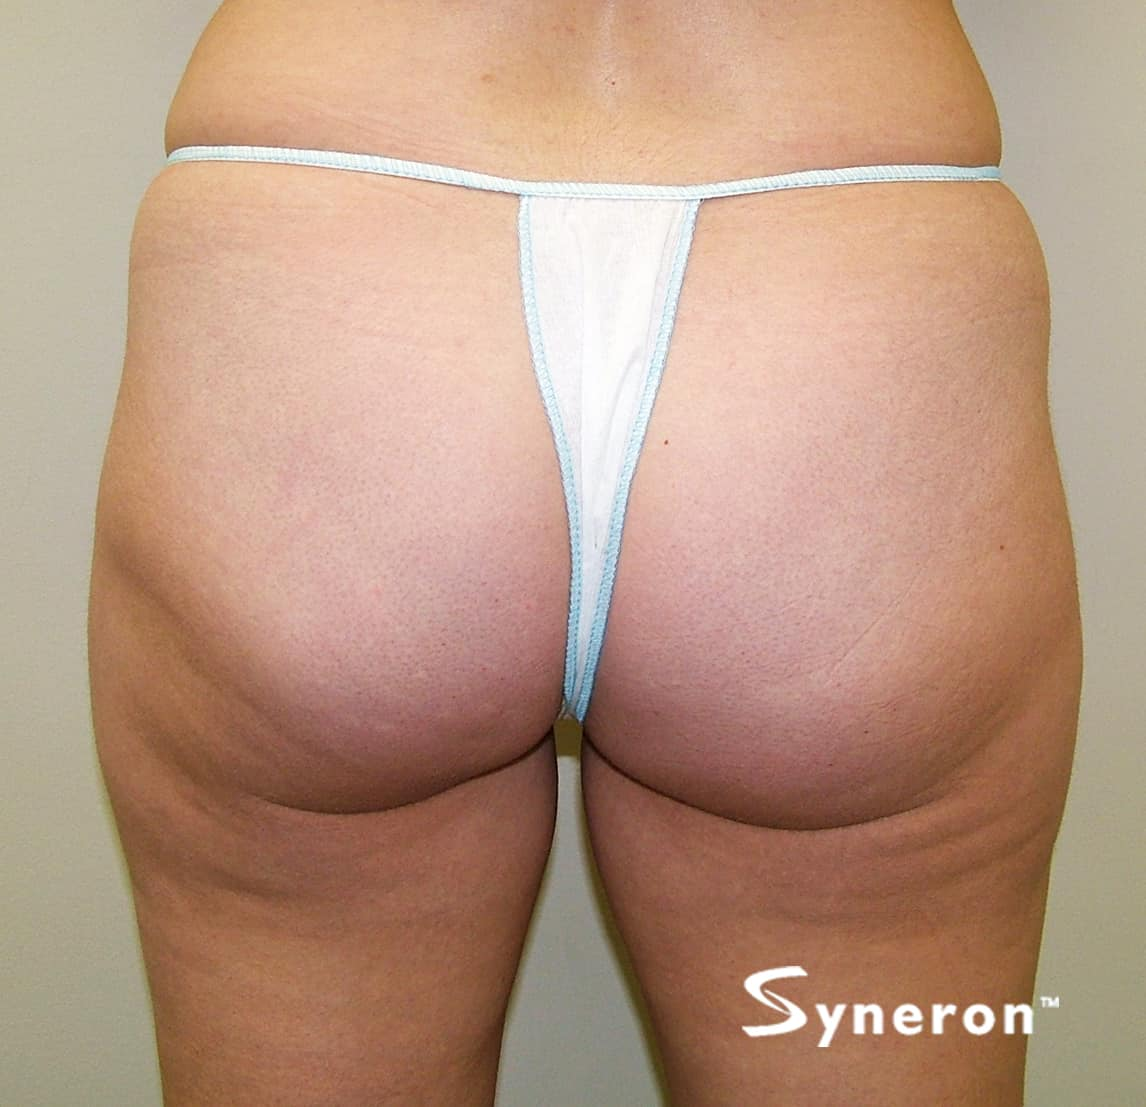 velashape 3 cellulite reduction vancouver elegance sculpting